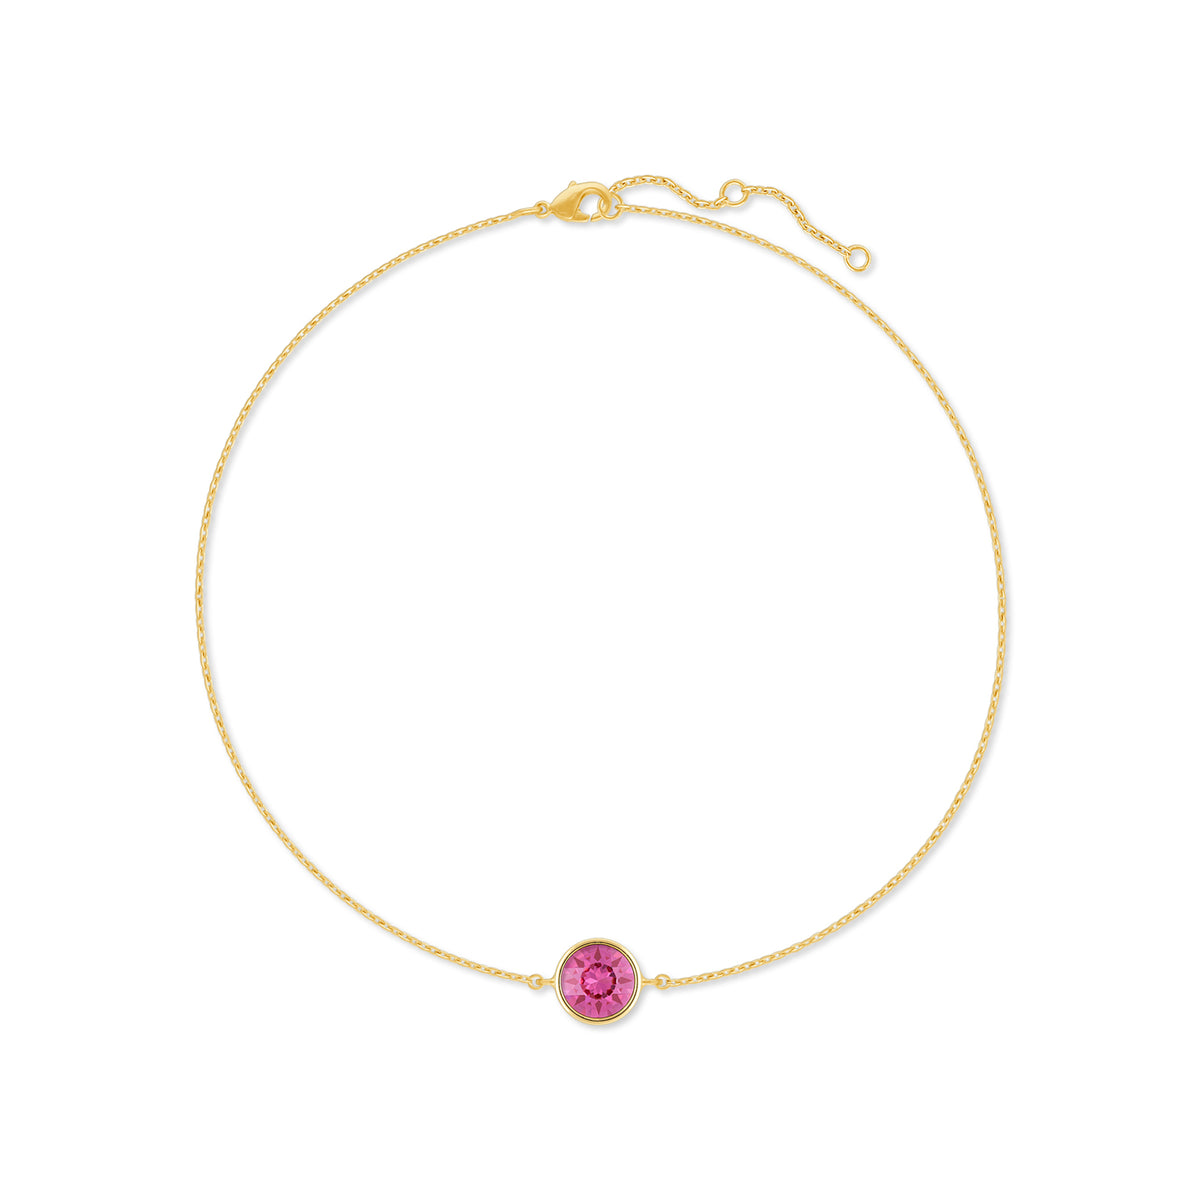 Harley Chain Bracelet with Pink Rose Round Crystals from Swarovski Gold Plated - Ed Heart